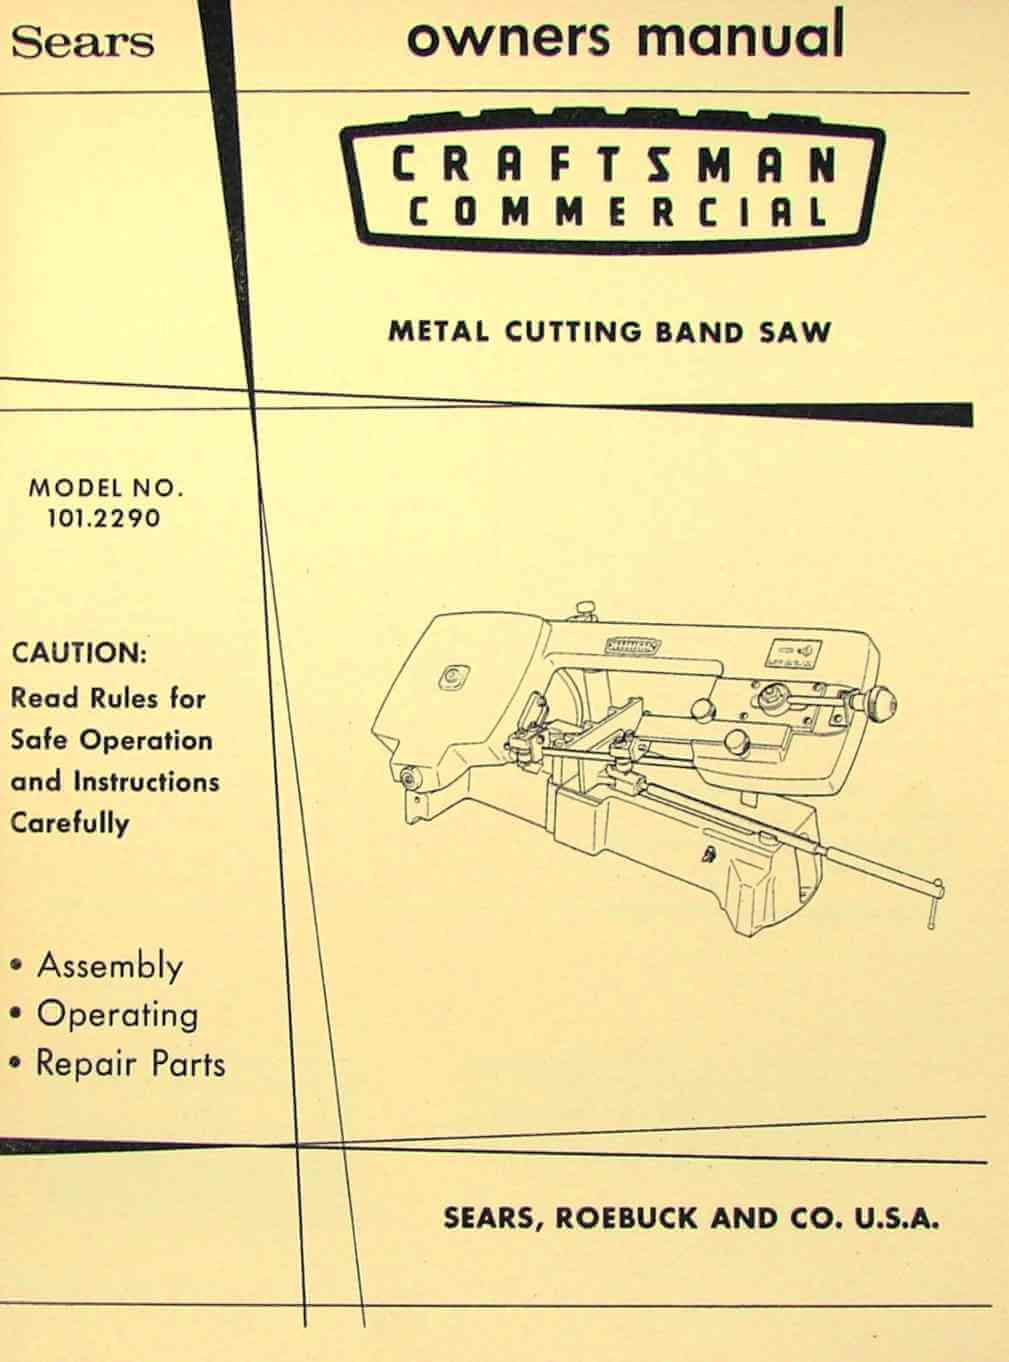 craftsman owner manuals